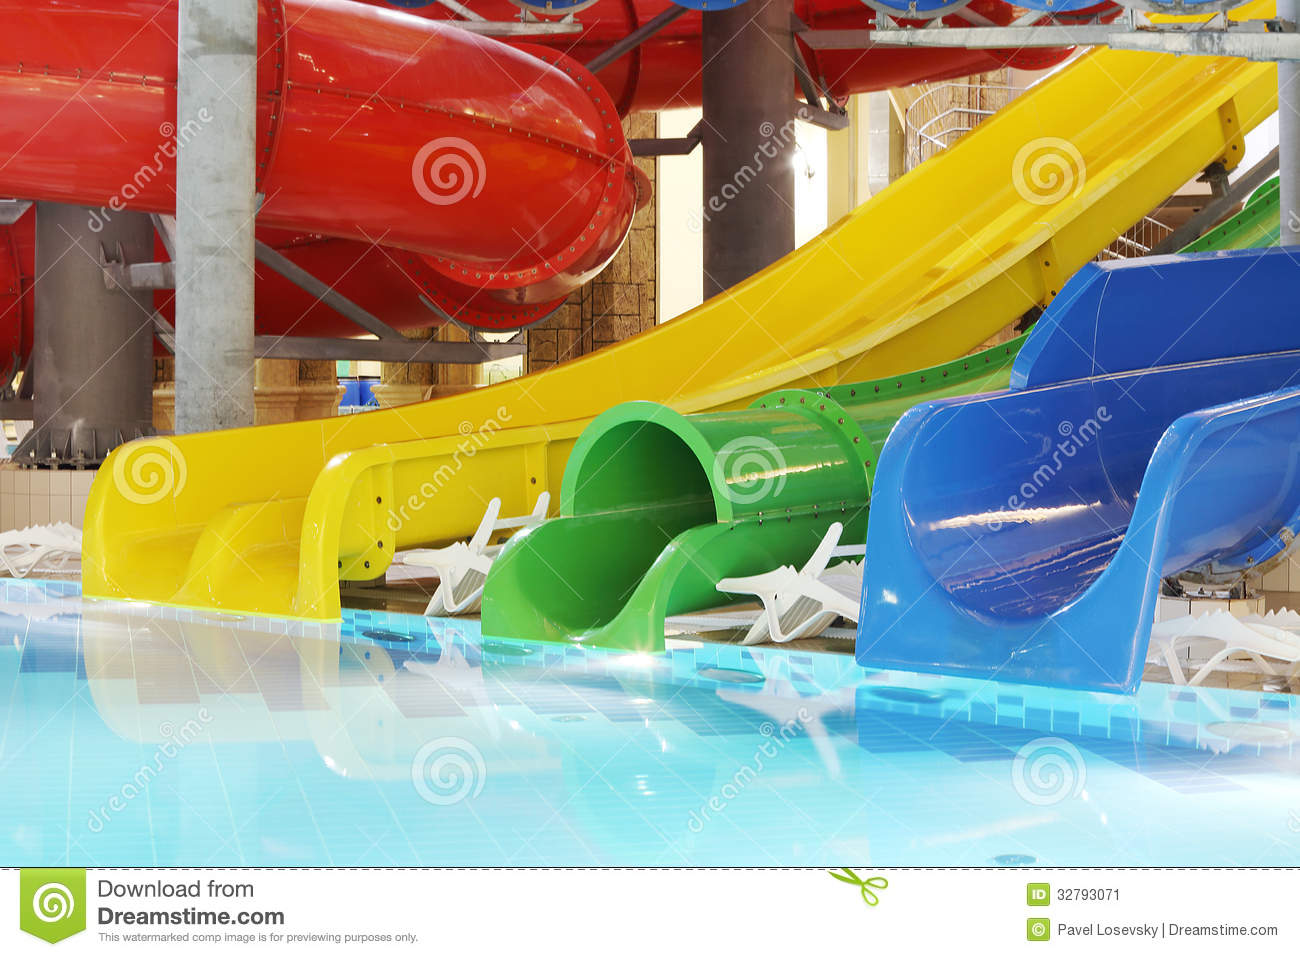 Pool with clear water and multi-colored water slides